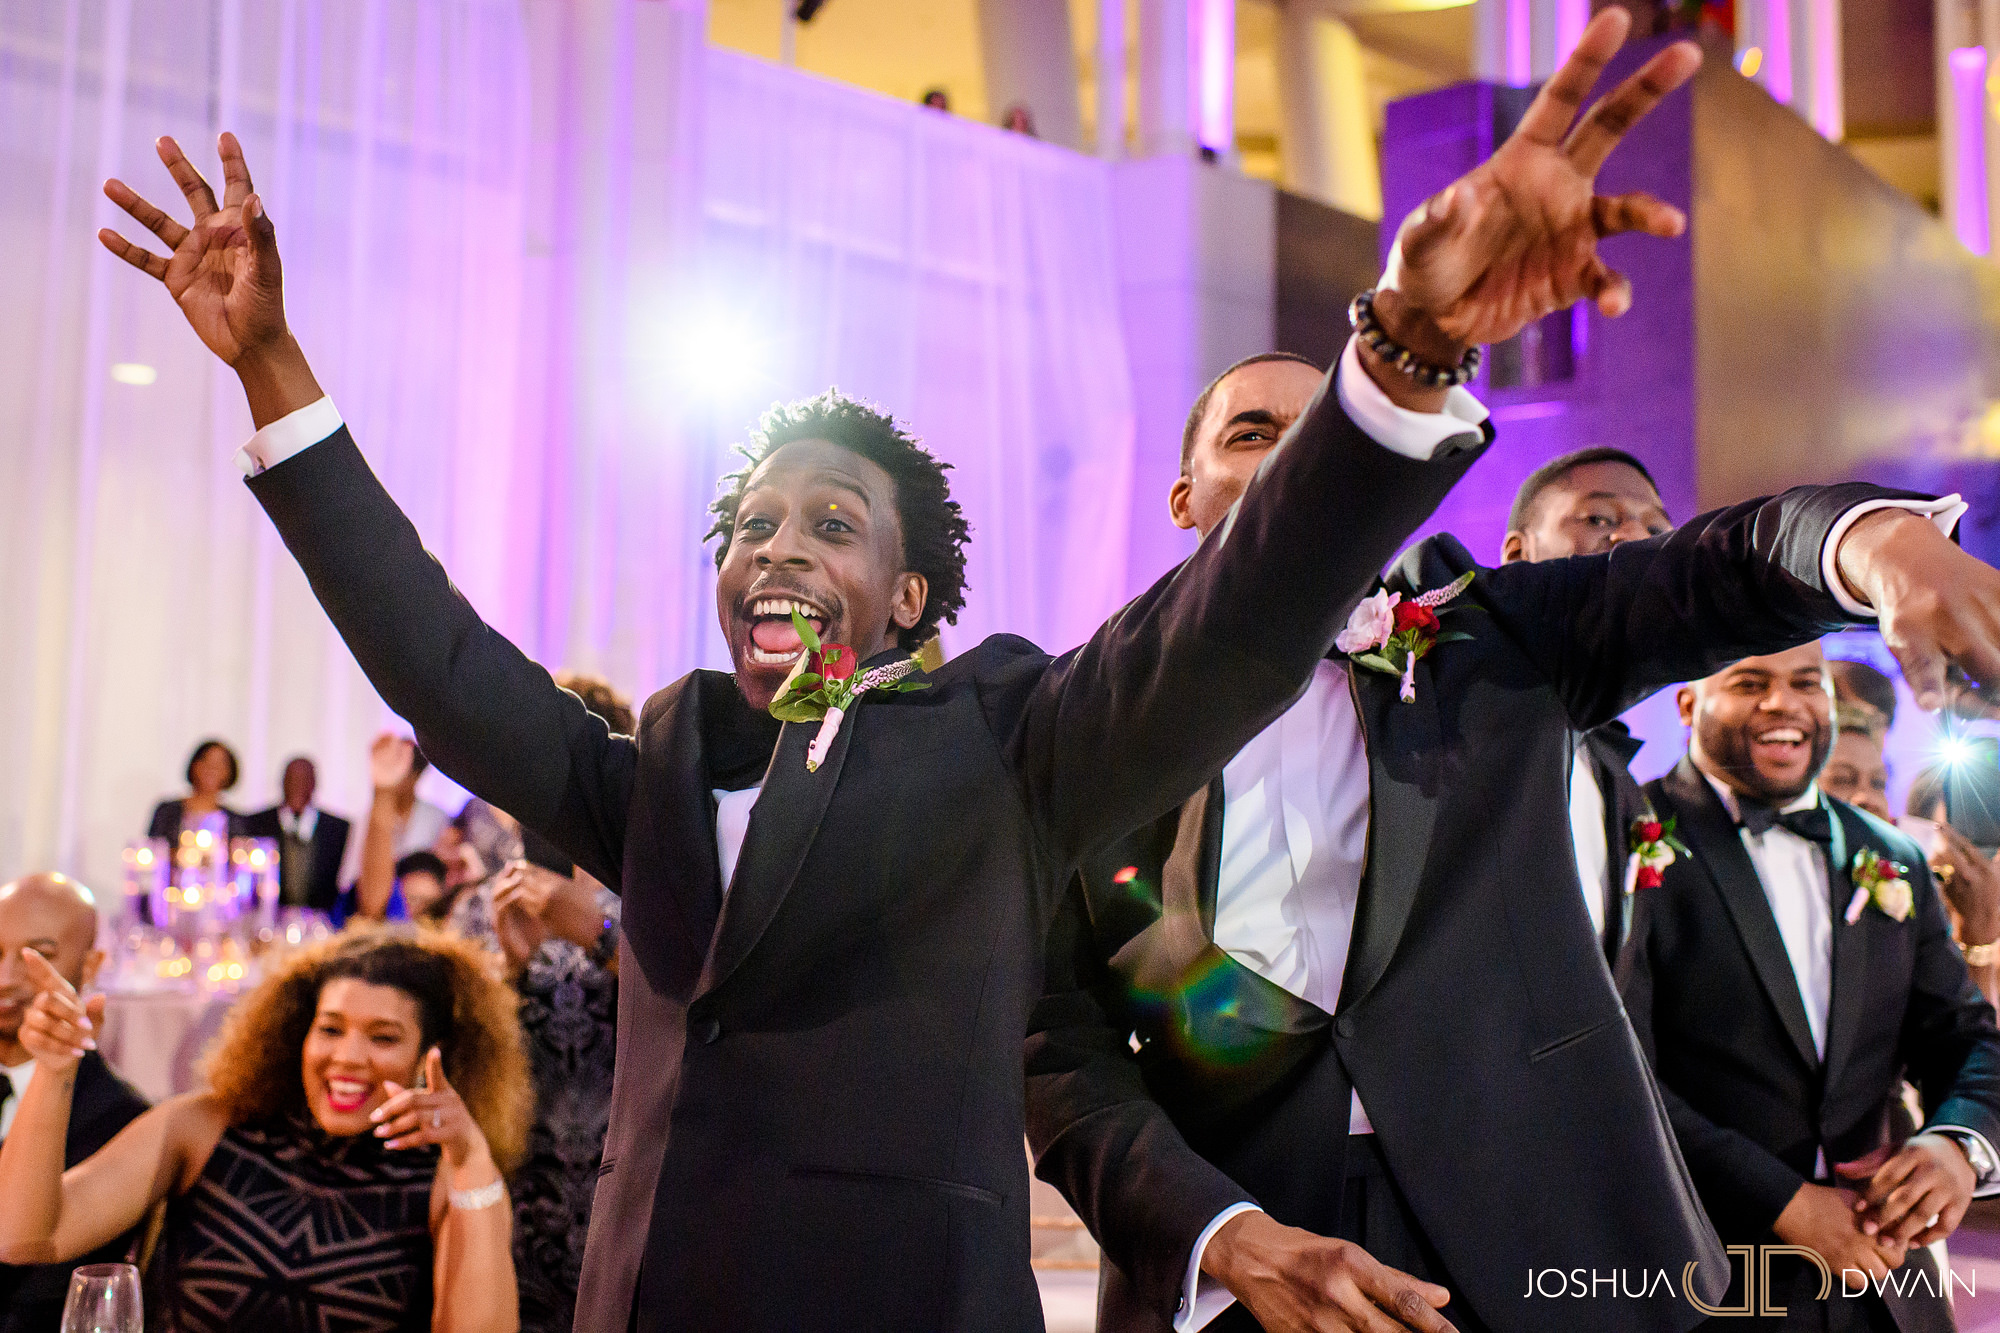 emerald-tolu--038-ronald-reagan-building-trade-center-best-washington-dc--wedding-photographer-joshua-dwain